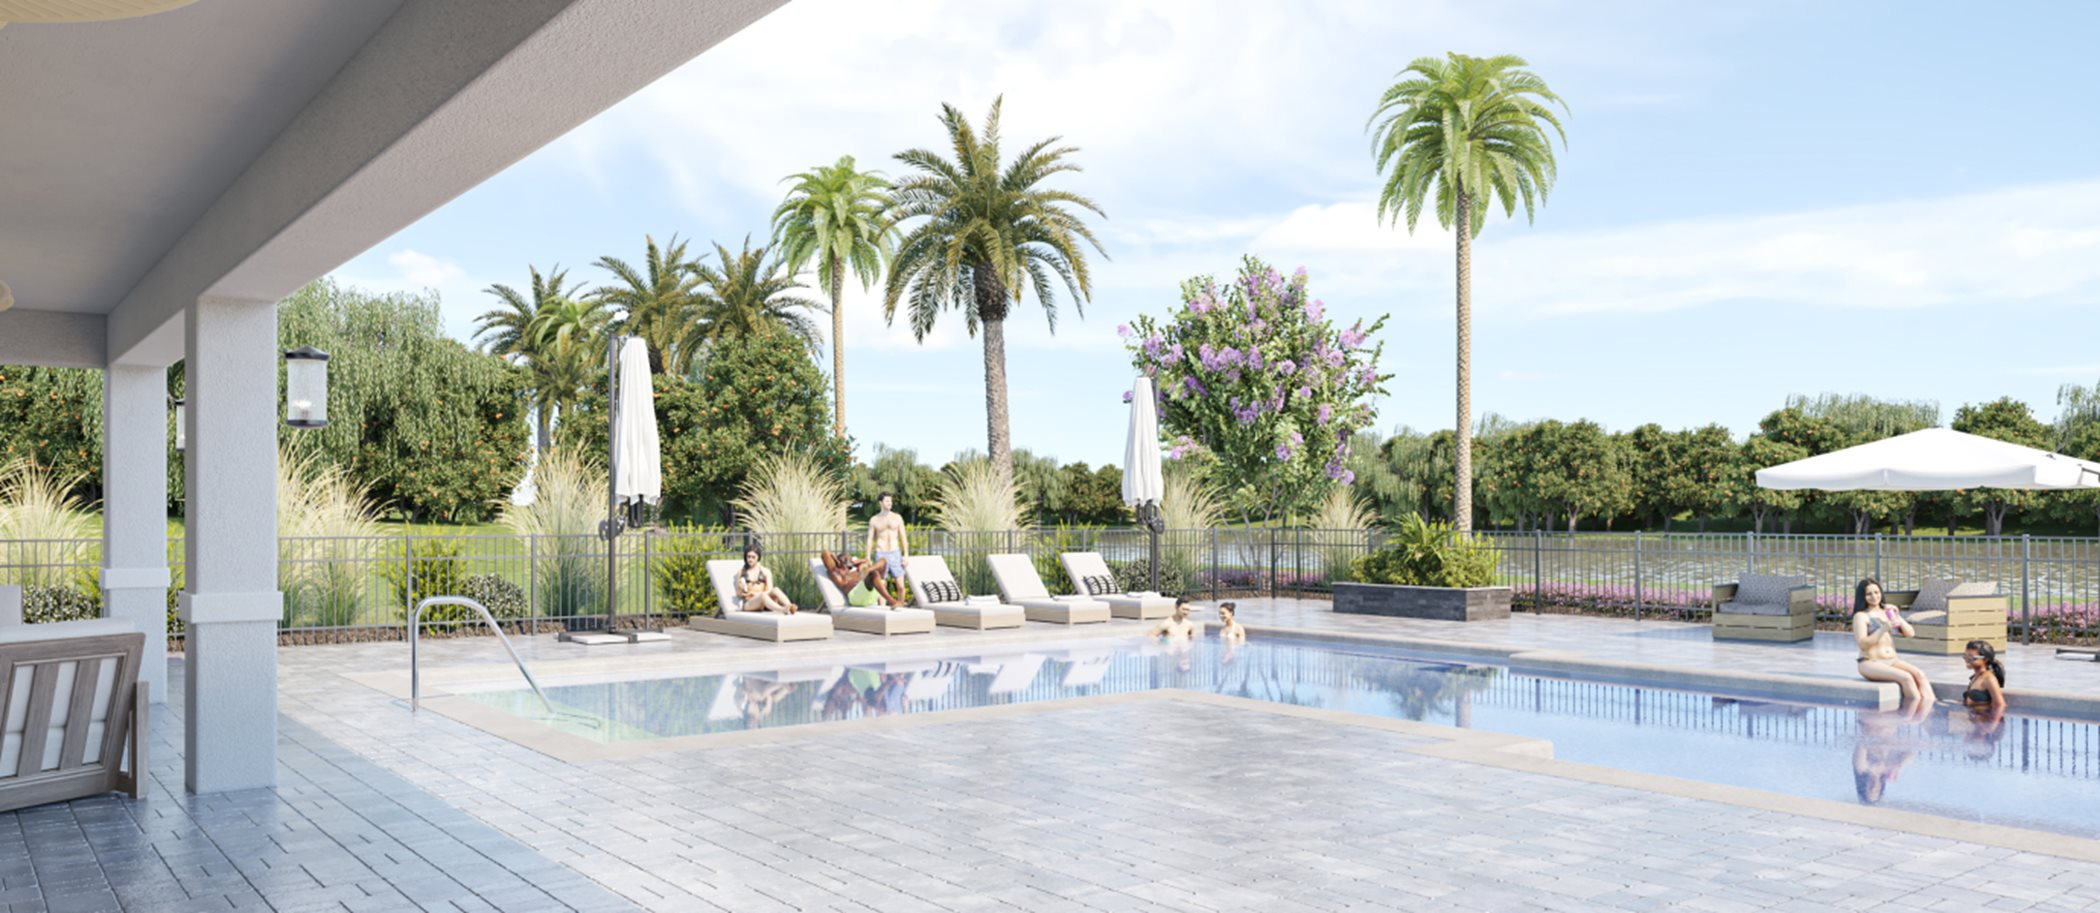 Everlands swimming pool and cabana